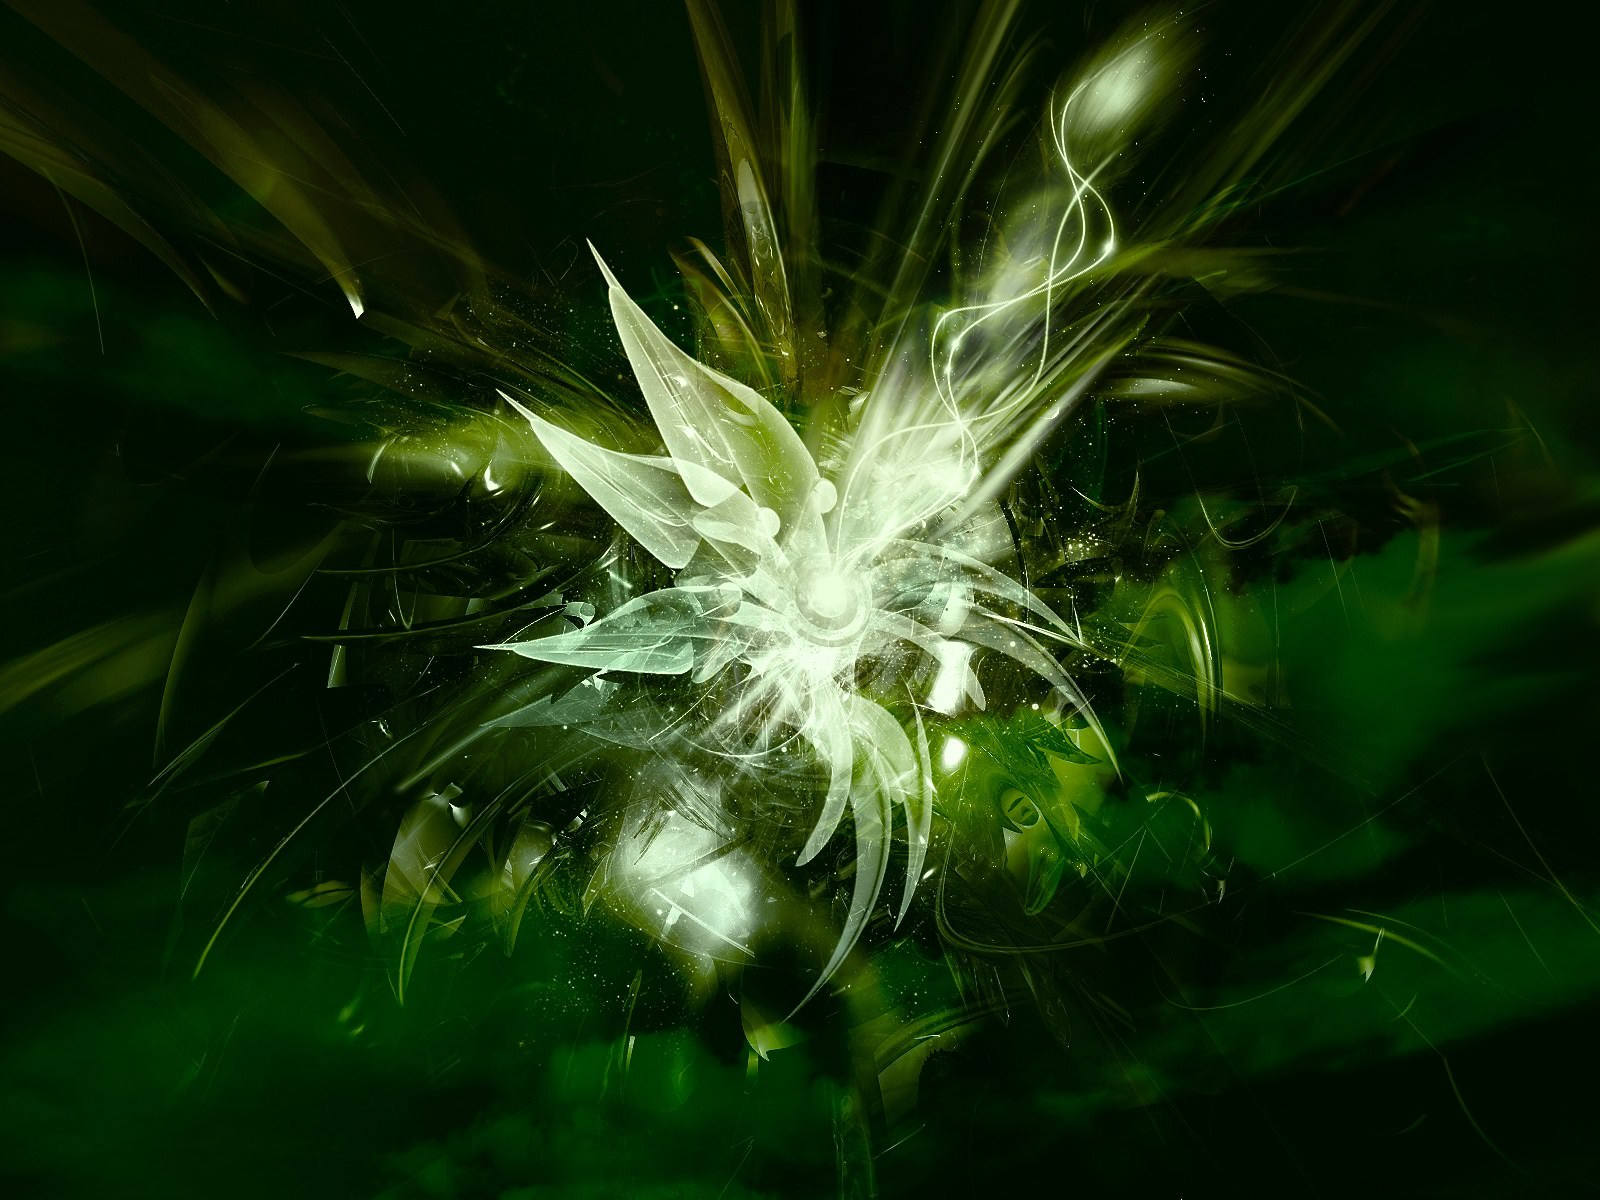 Abstract Green Texture Wallpaper